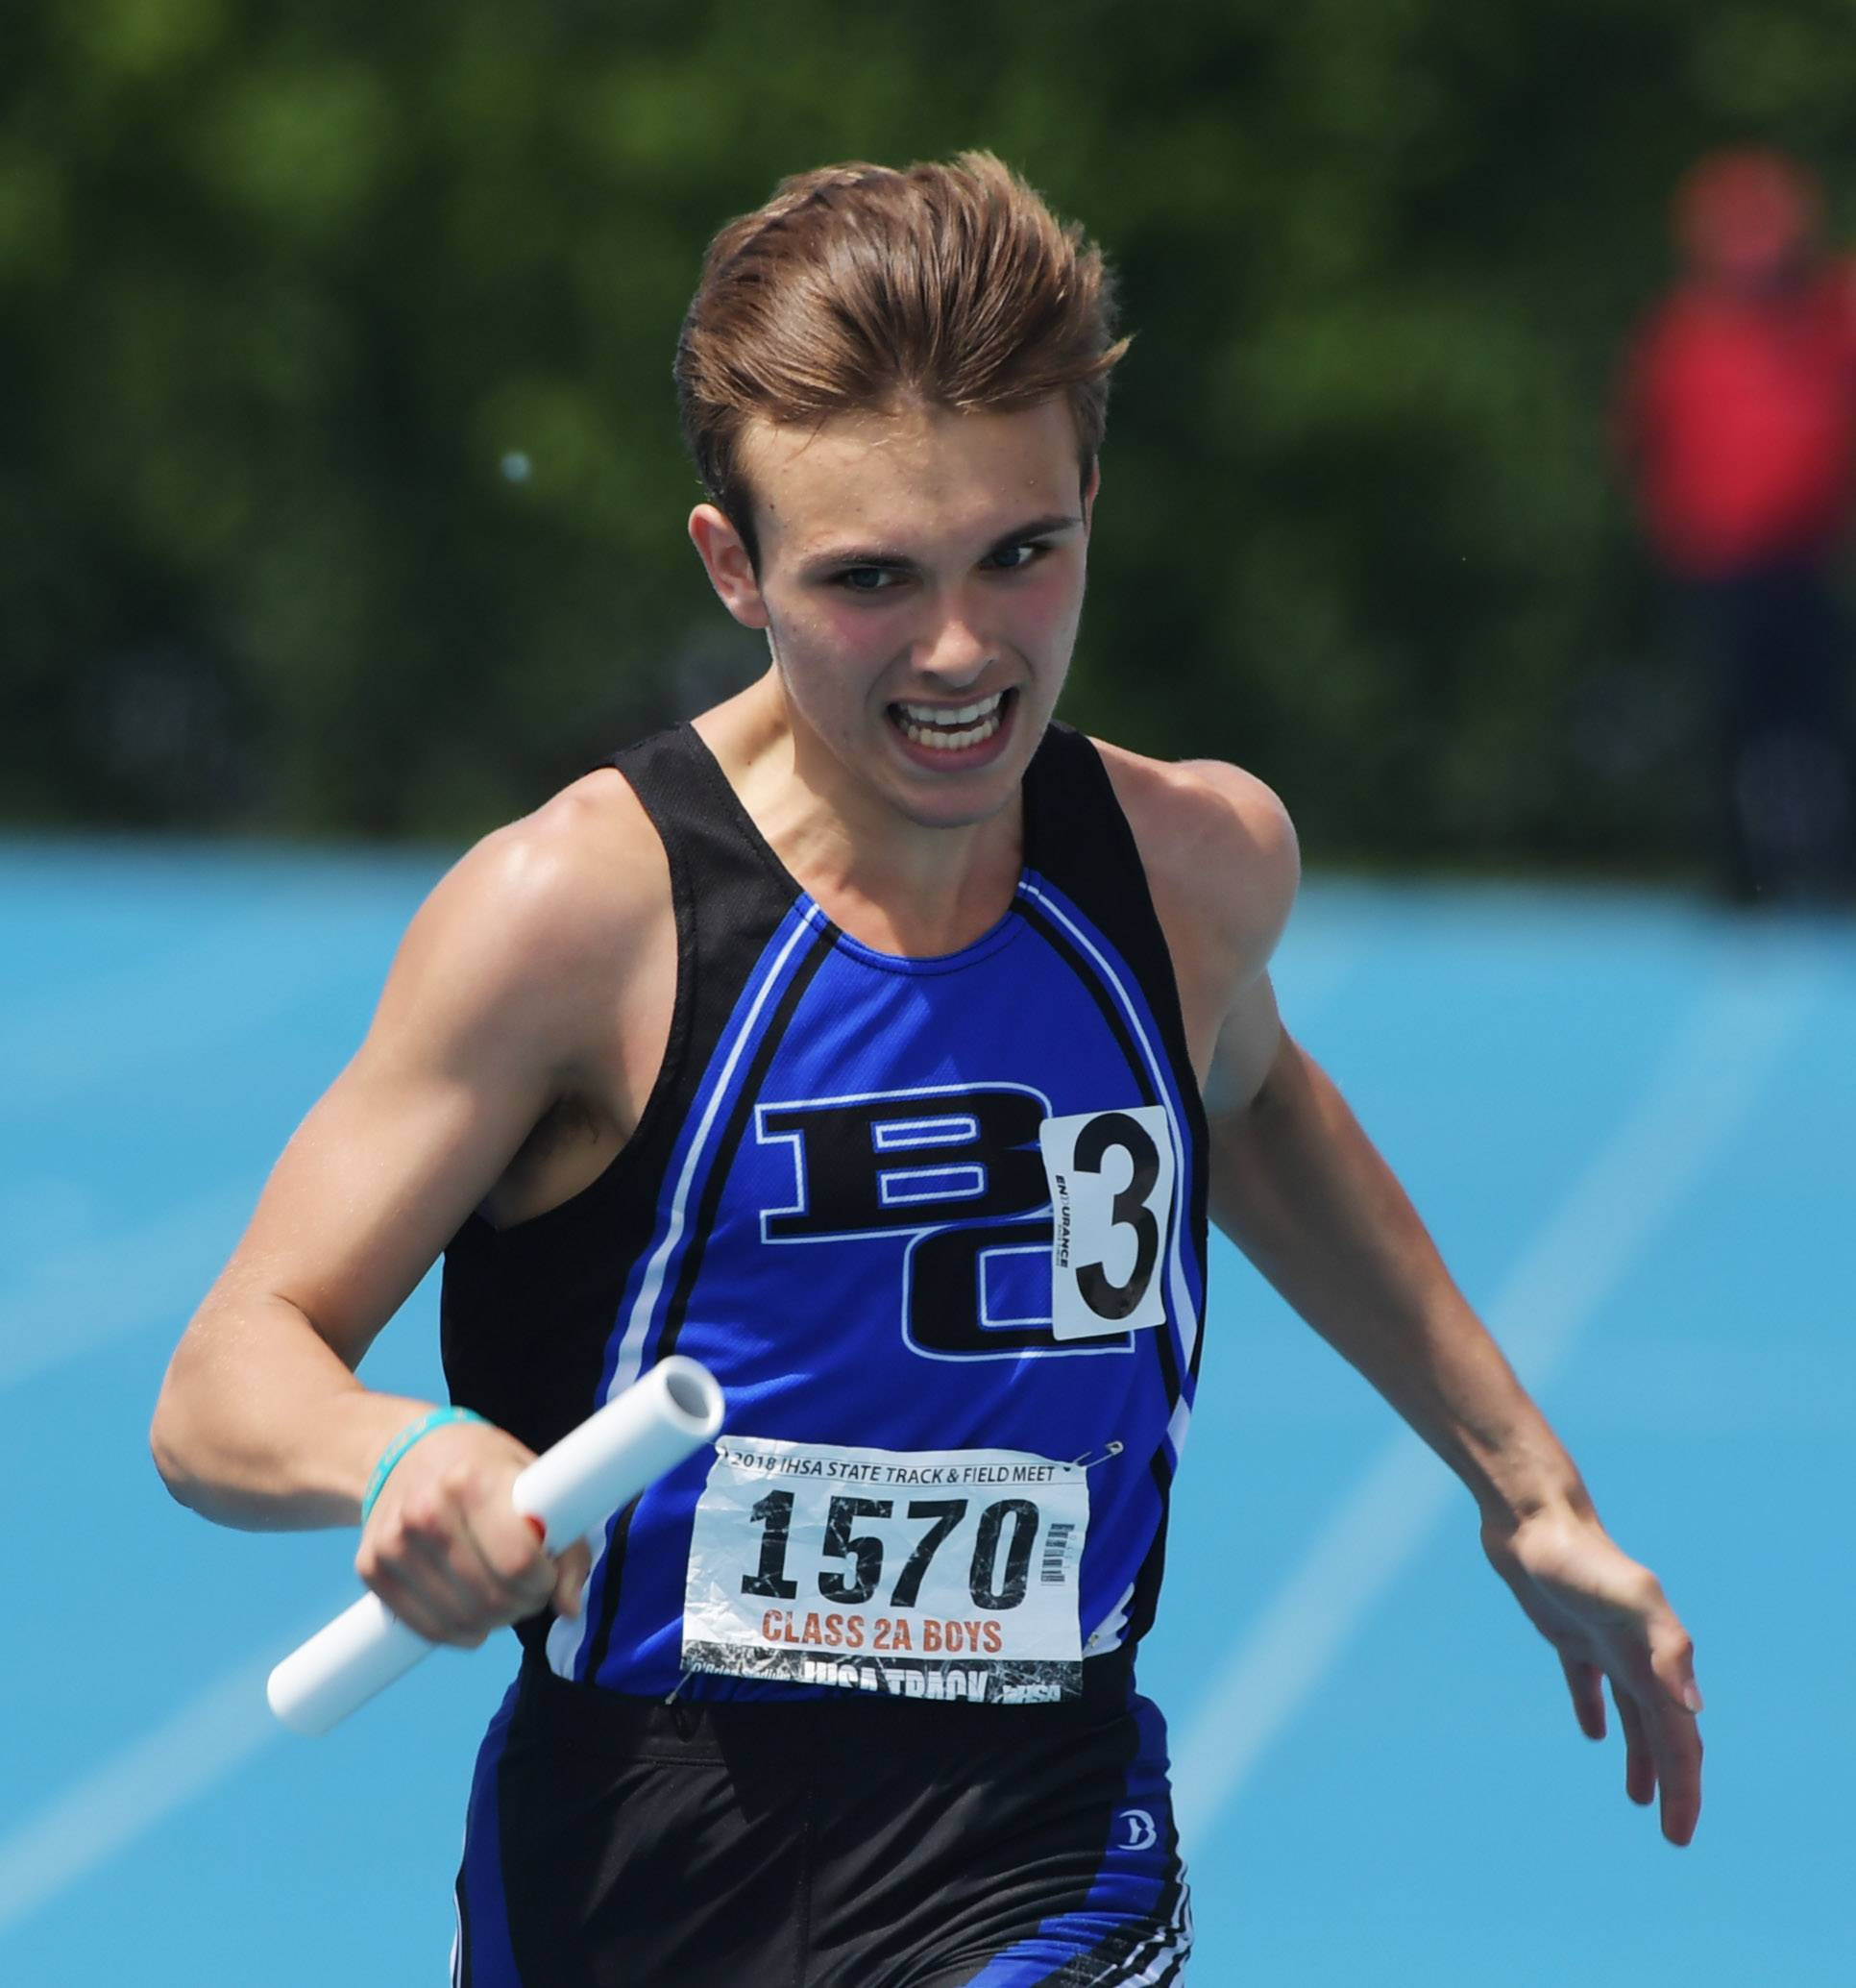 Burlington Central's Jacob Teets heads for the finish line in the 800-meter relay during the Class 2A boys state track and field finals in Charleston Saturday.